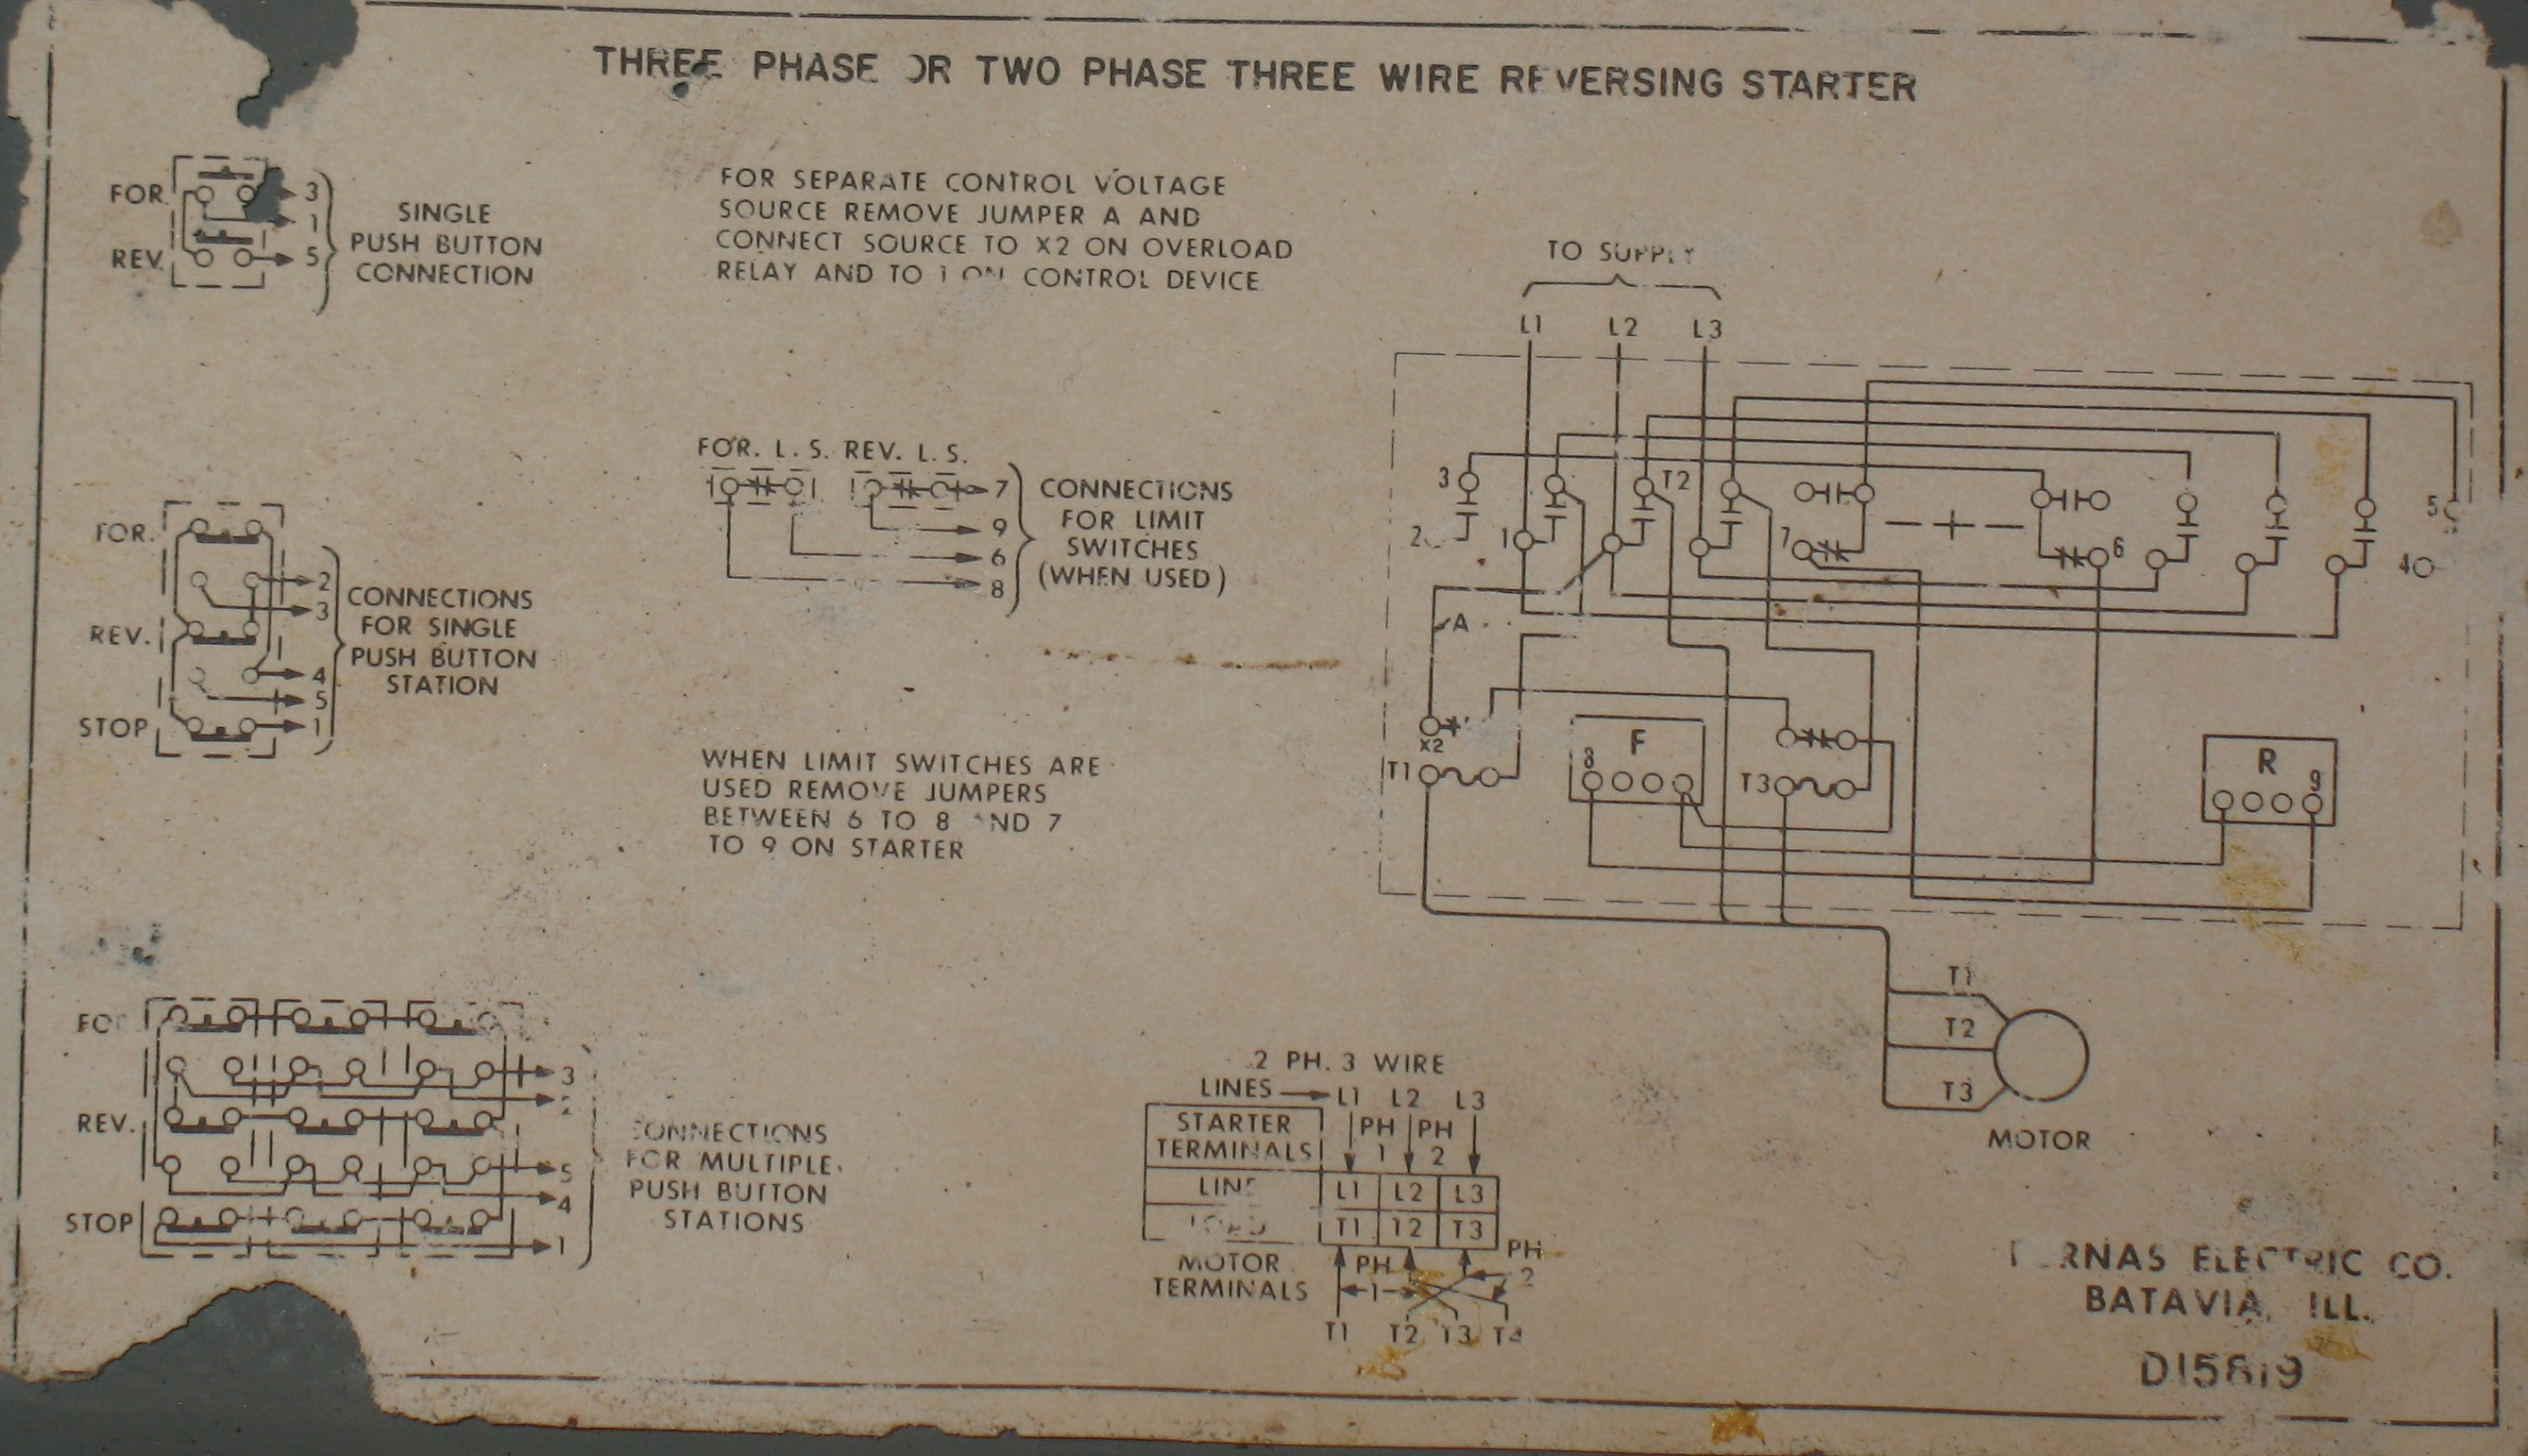 Ge 8 000 Line Mcc Wiring Diagram Guide And Troubleshooting Of Breaker Panel Diagrams For 7700 Bucket 8000 Series Square D Qo 100 Amp Motor Control Center In A Bus Plugs